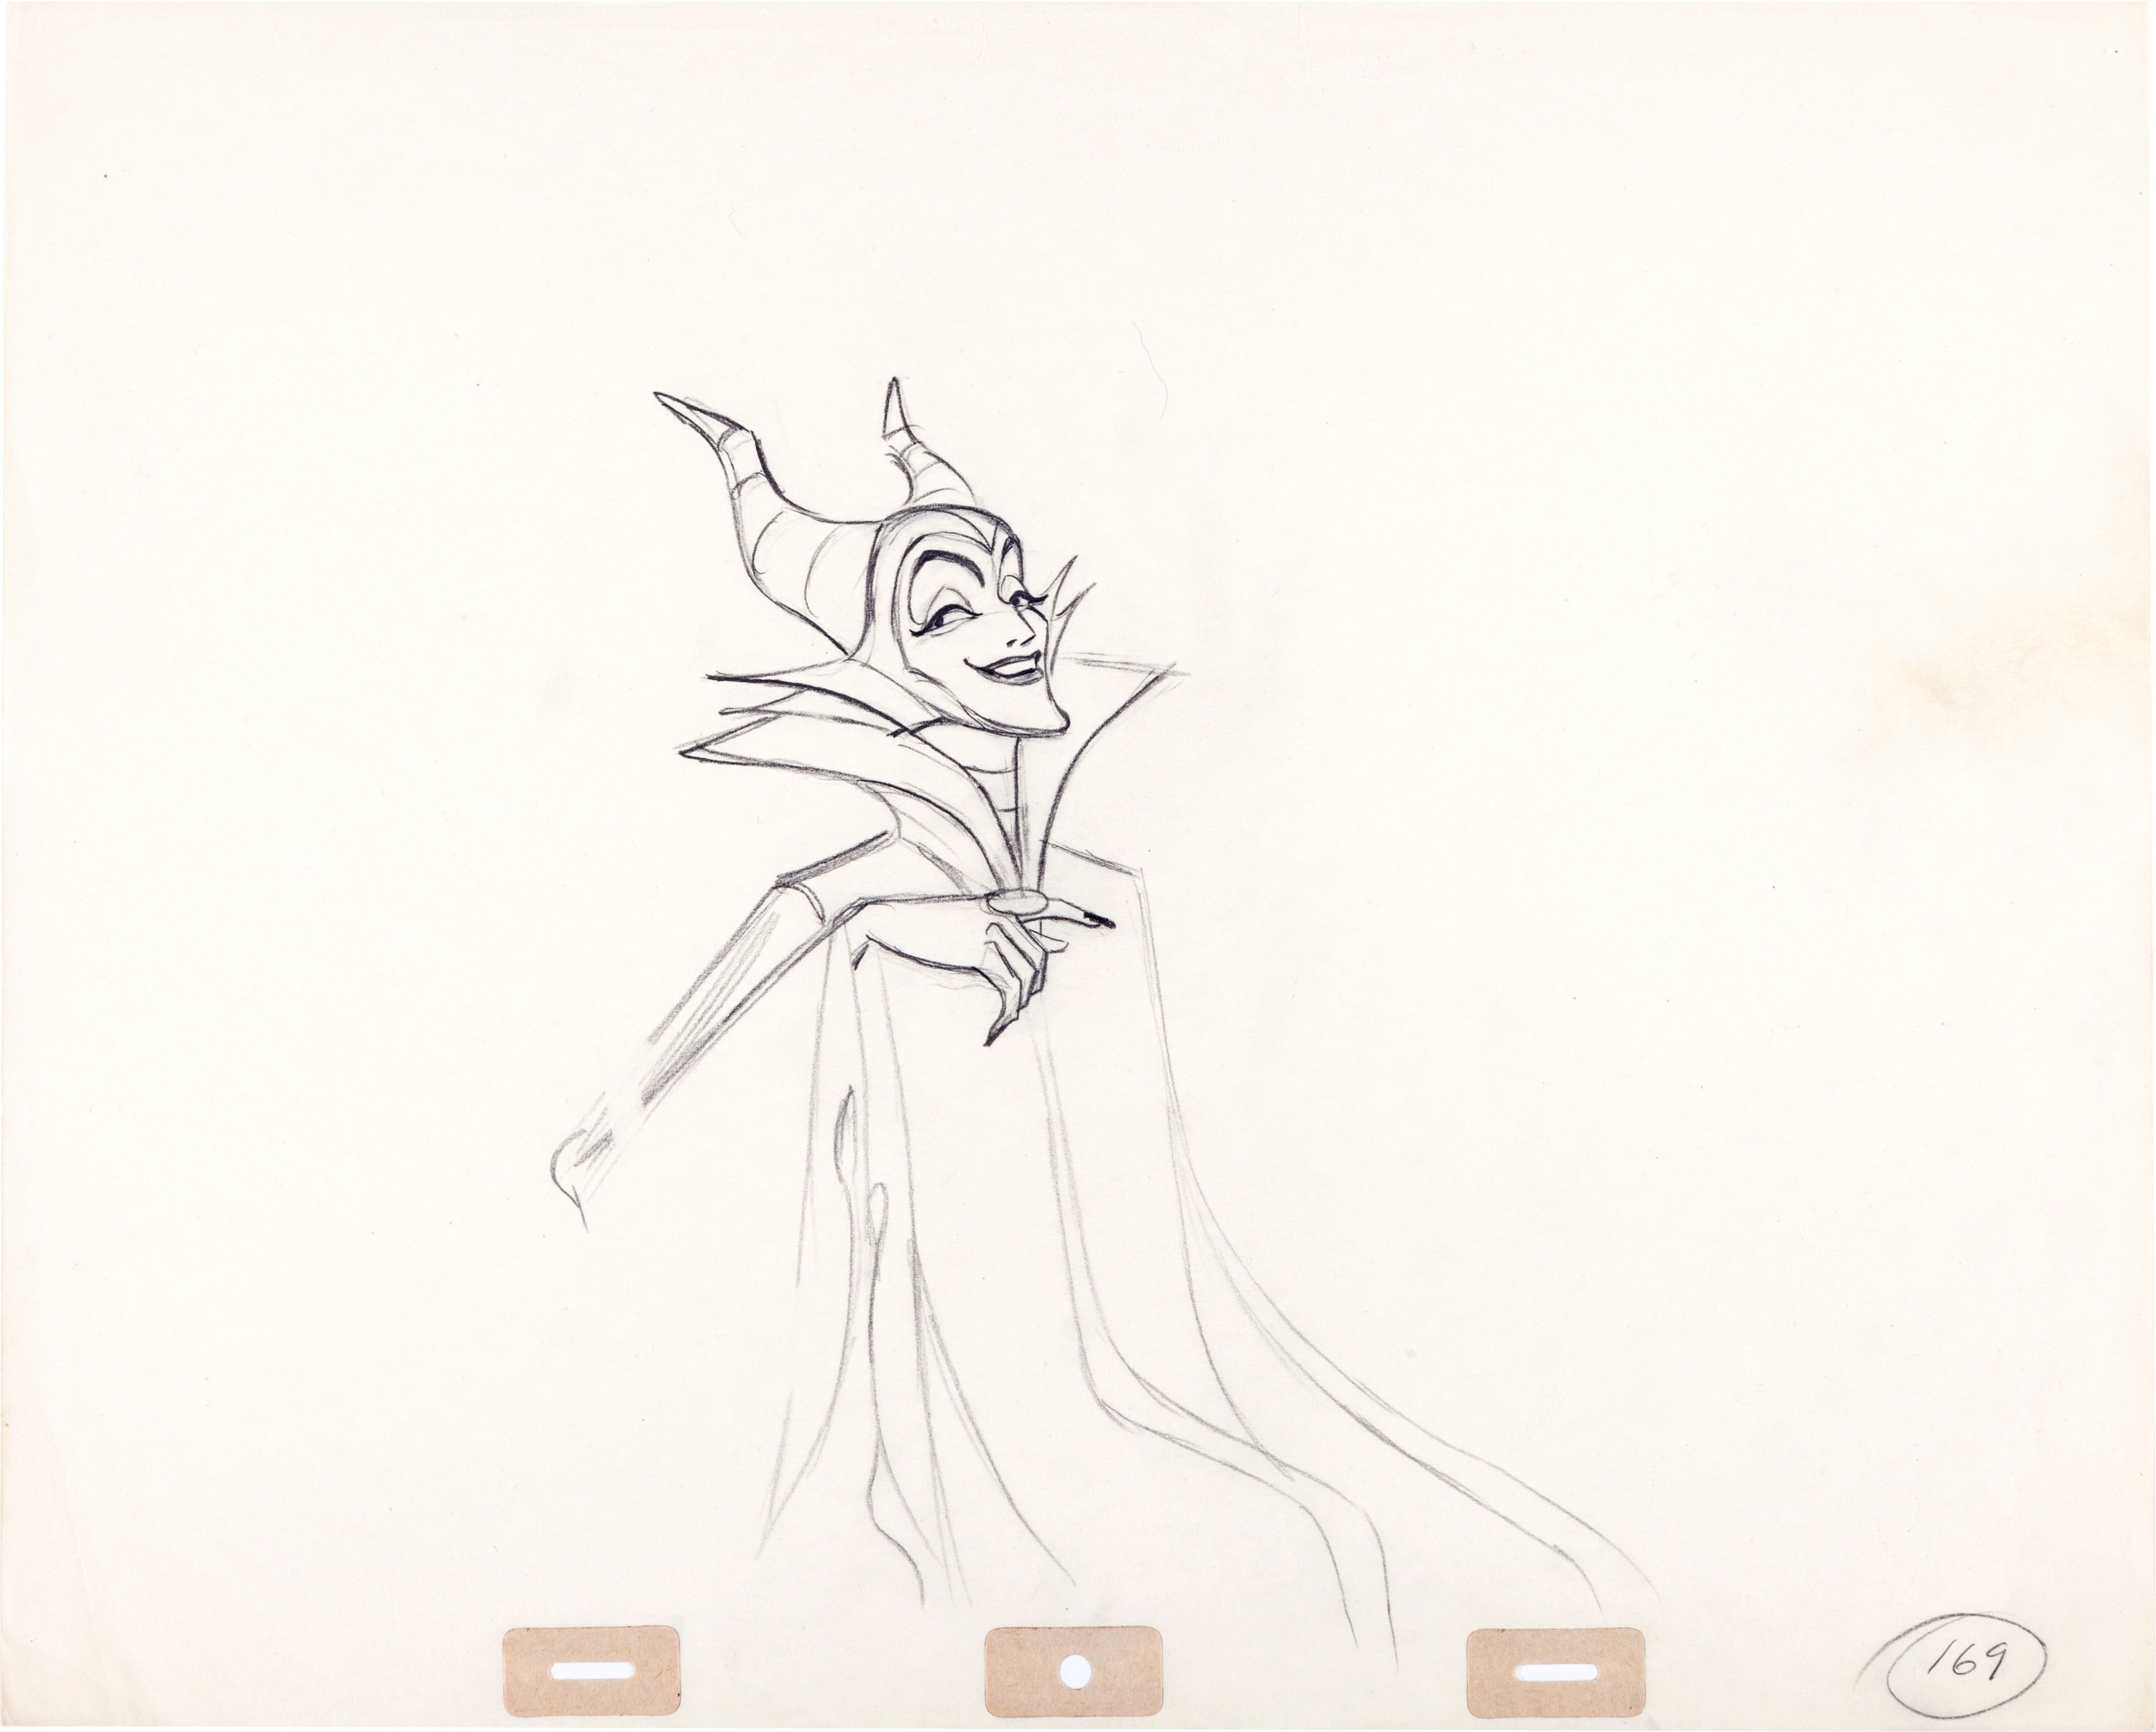 Animation Drawing Of Malificent From Disney S Sleeping Beauty